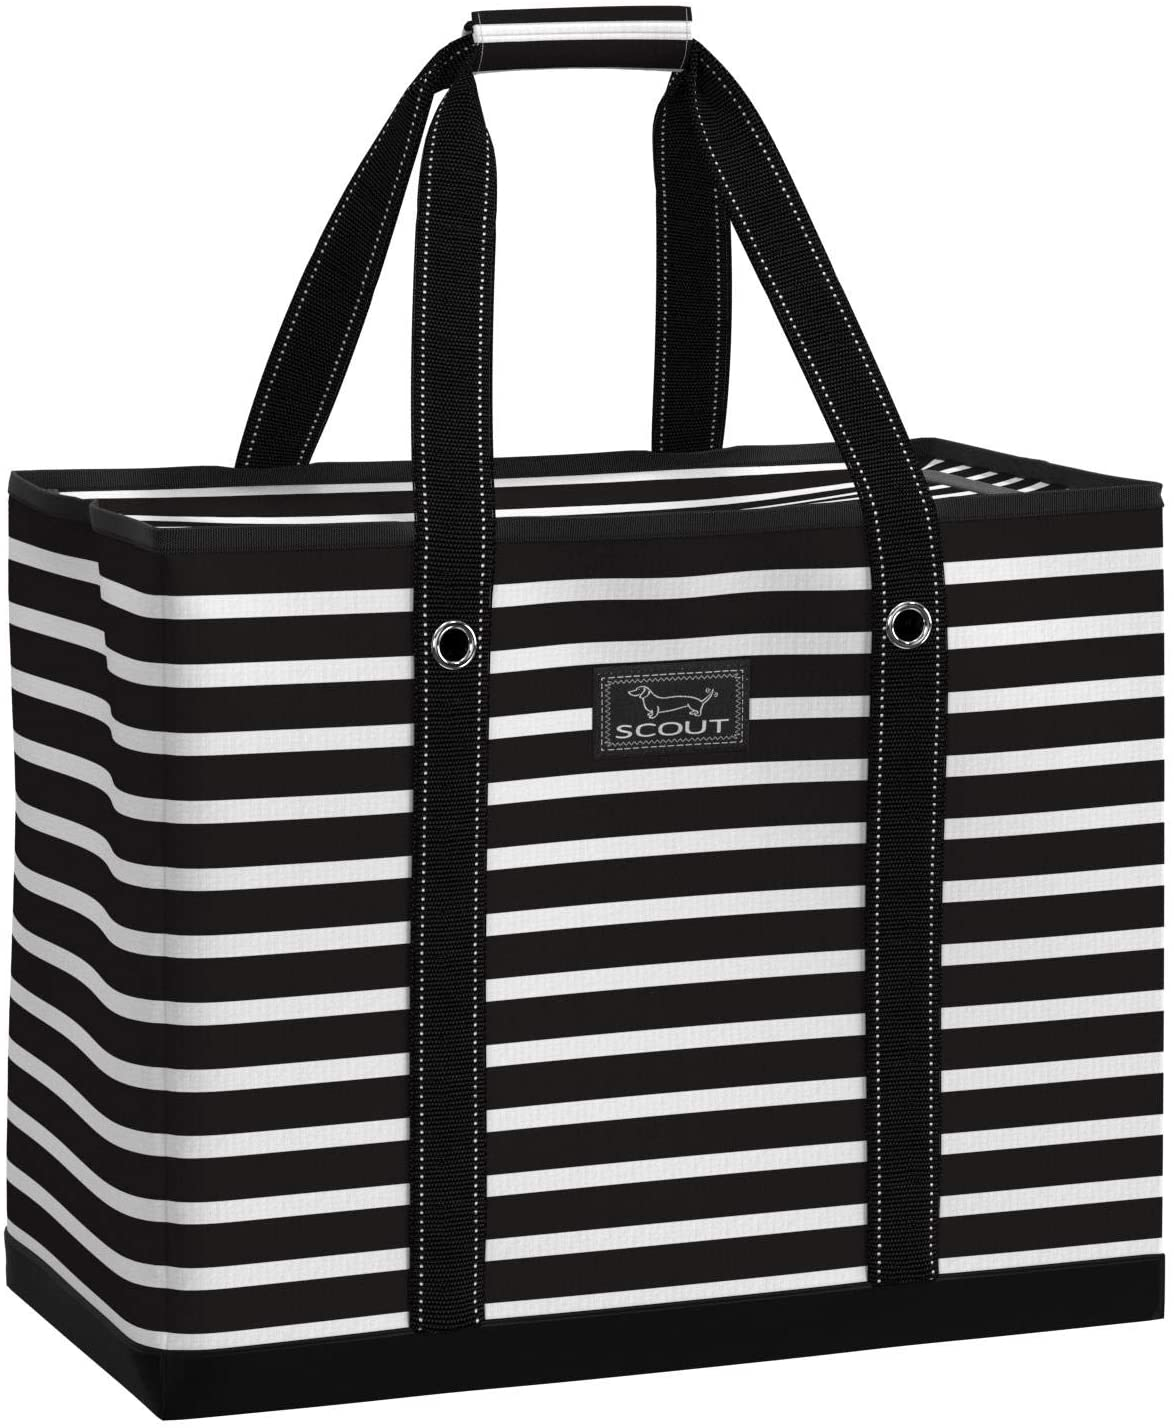 SCOUT 3 Girls Bag, Extra Large Tote Bag for Women, Perfect Oversized Beach Bag or Pool Bag (Multiple Patterns Available)